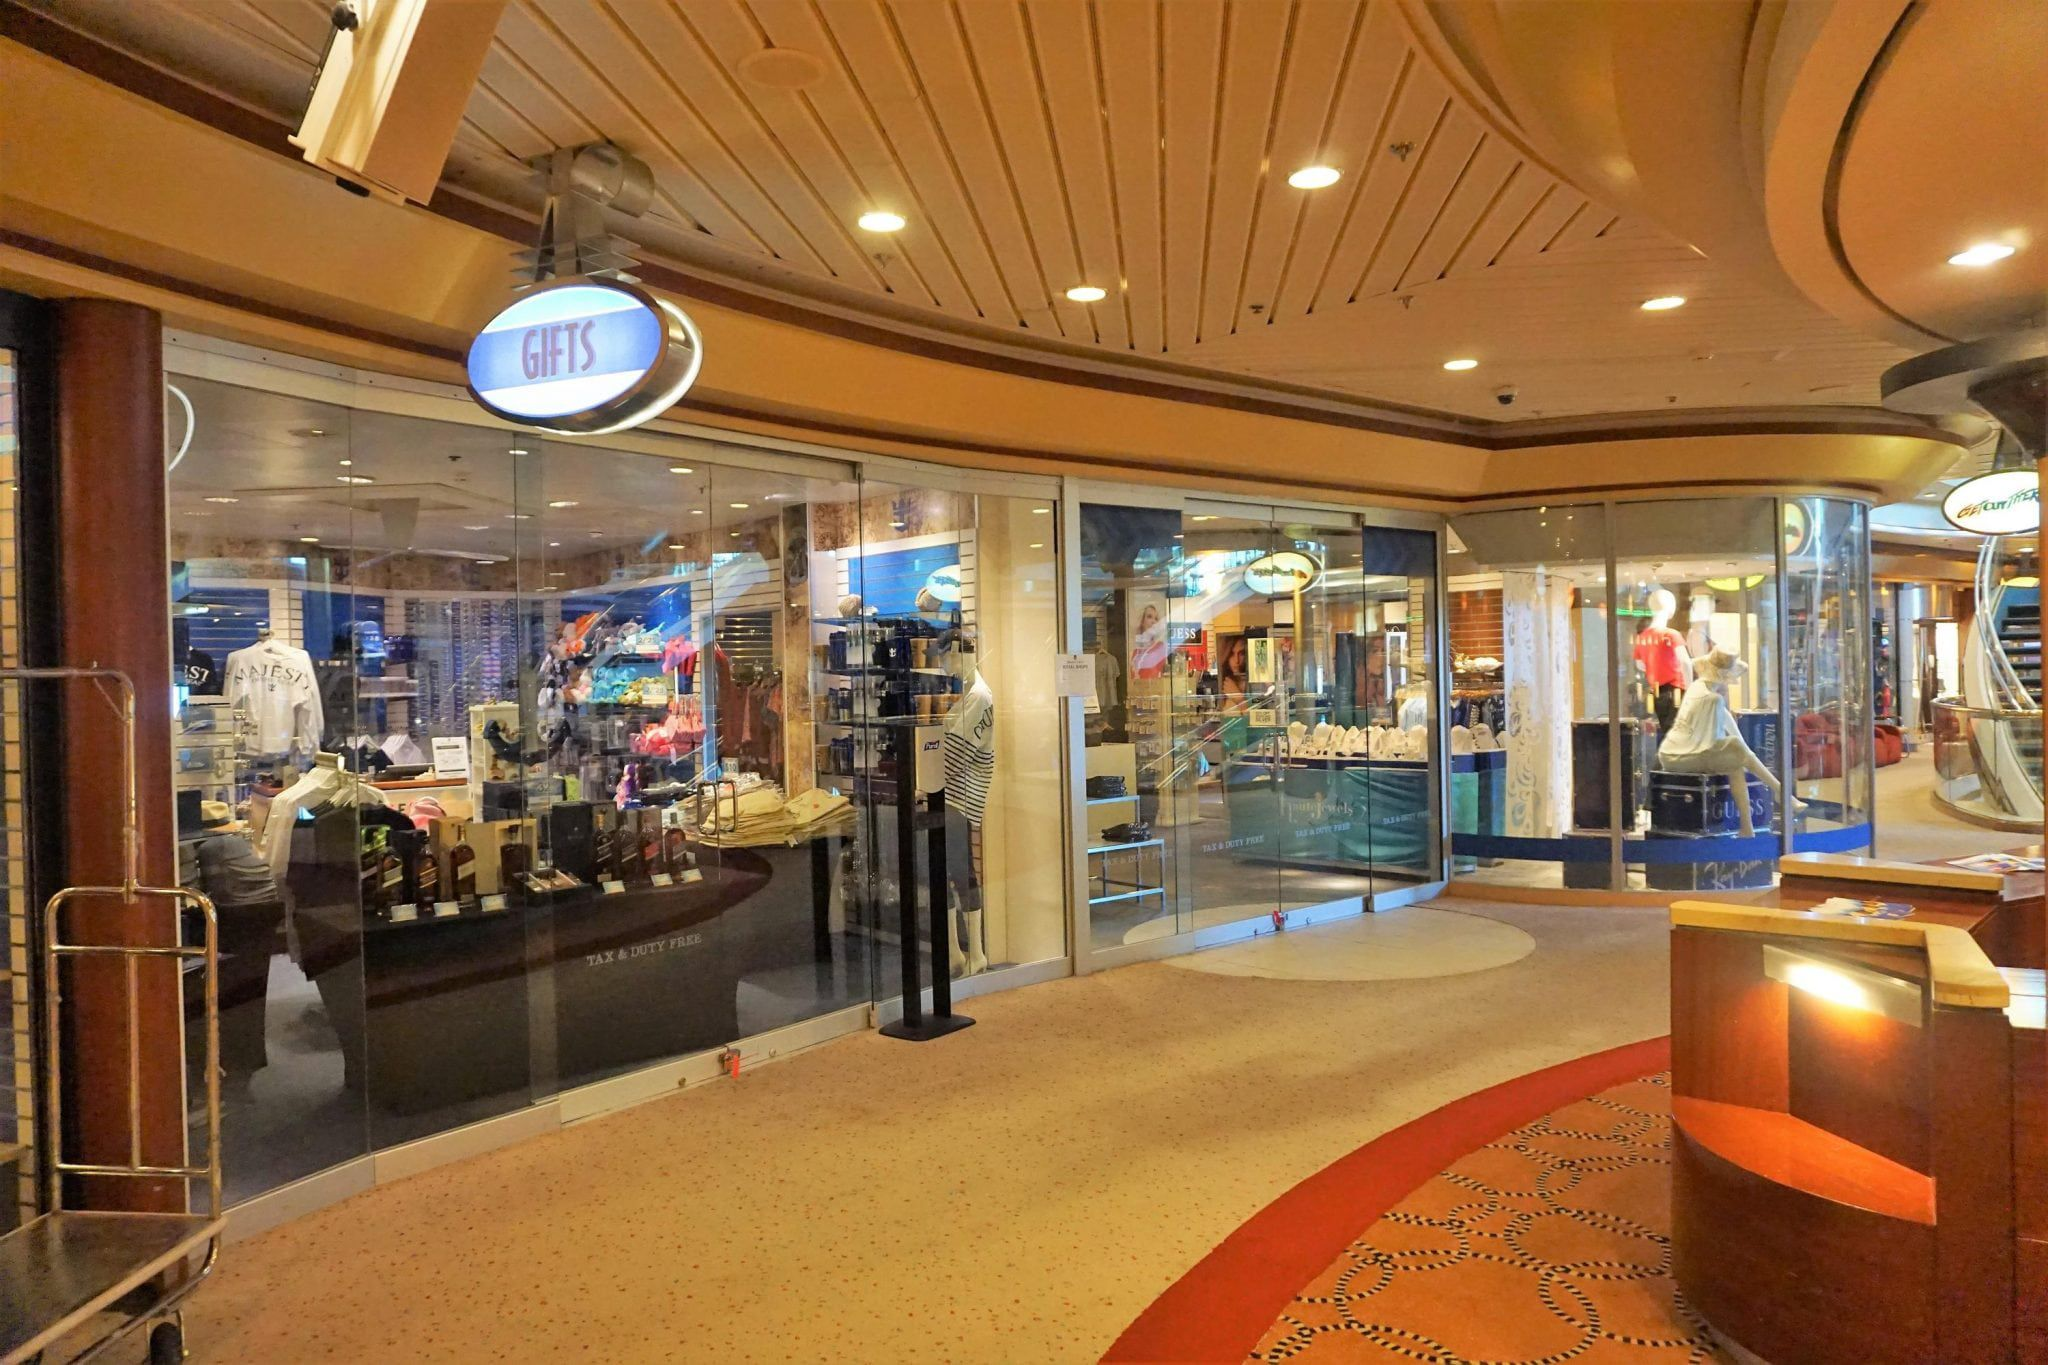 Shops on Majesty of the Seas